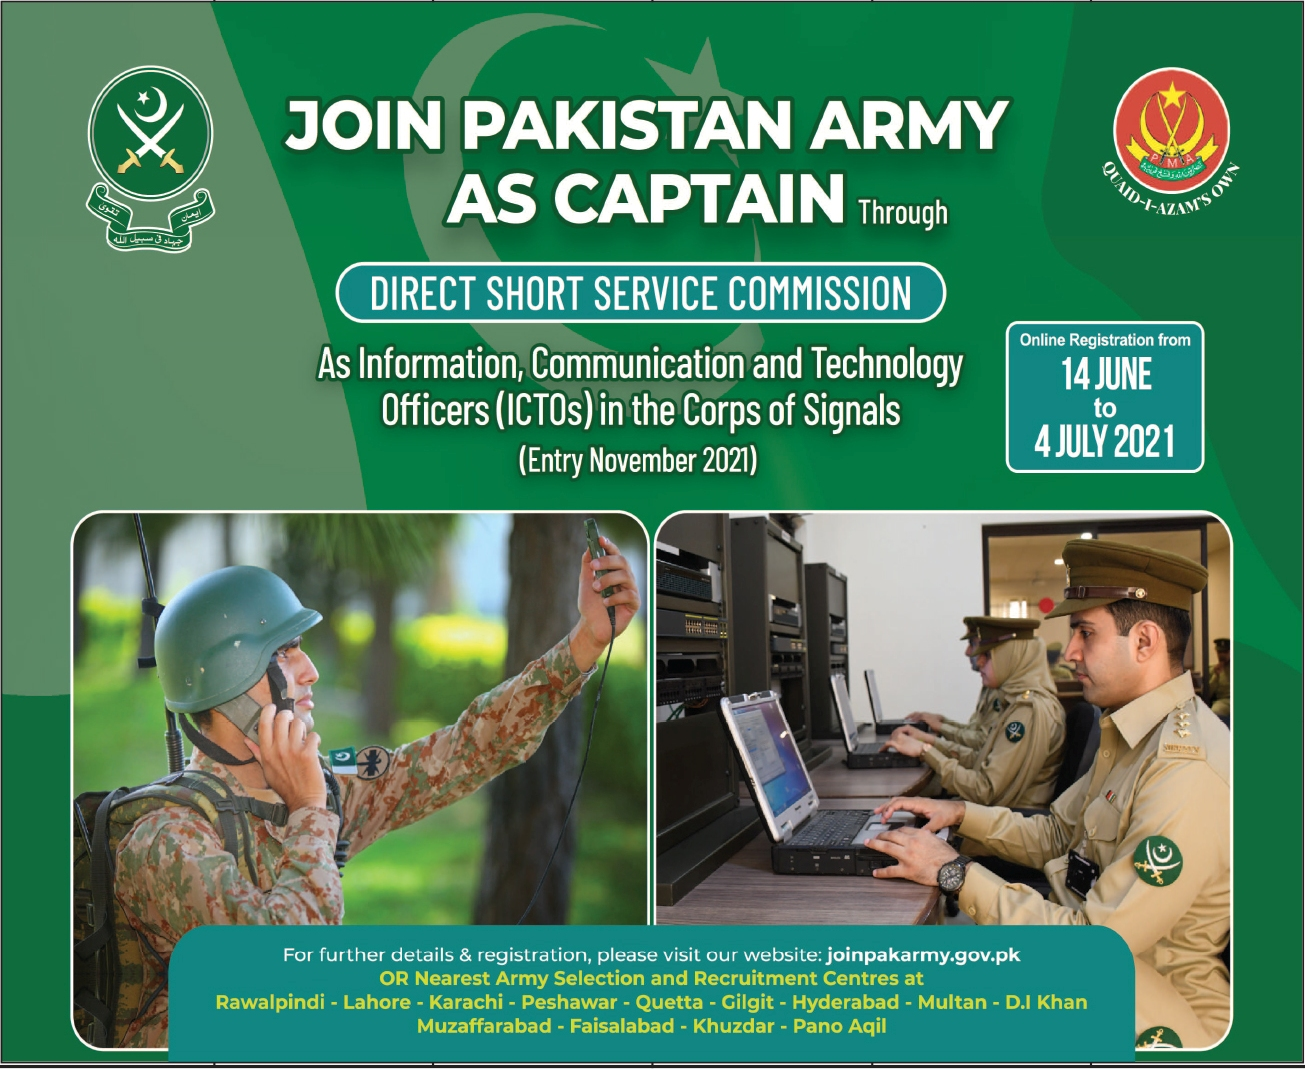 joinpakarmy.gov.pk - Pakistan Army as Captain through Direct Short Service Commission (DSSC) Jobs 2021 in Pakistan